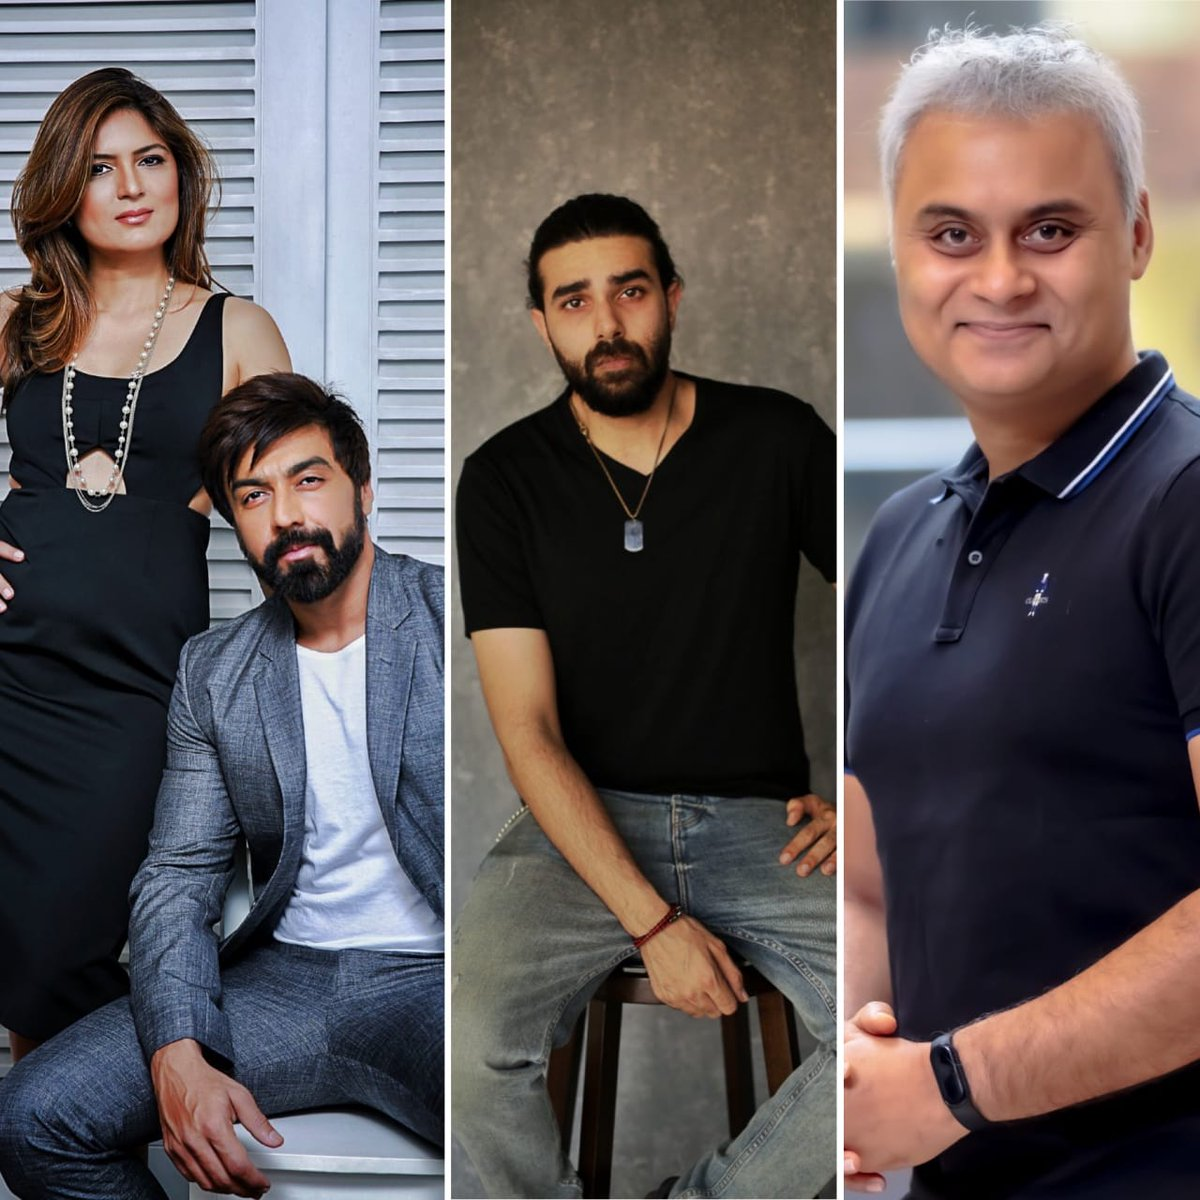 E-GAMING TOURNAMENT + AWARDS... Deepa Pardasany - Ashish Chowdhry [#HindustanTalkies] and Neeraj Roy [#Hungama] announce #IndianGamingLeague... E-sports league that hosts gaming tournaments online and offline... First 45-day tournament starts 15 March 2021... Yash Pariani is CEO.